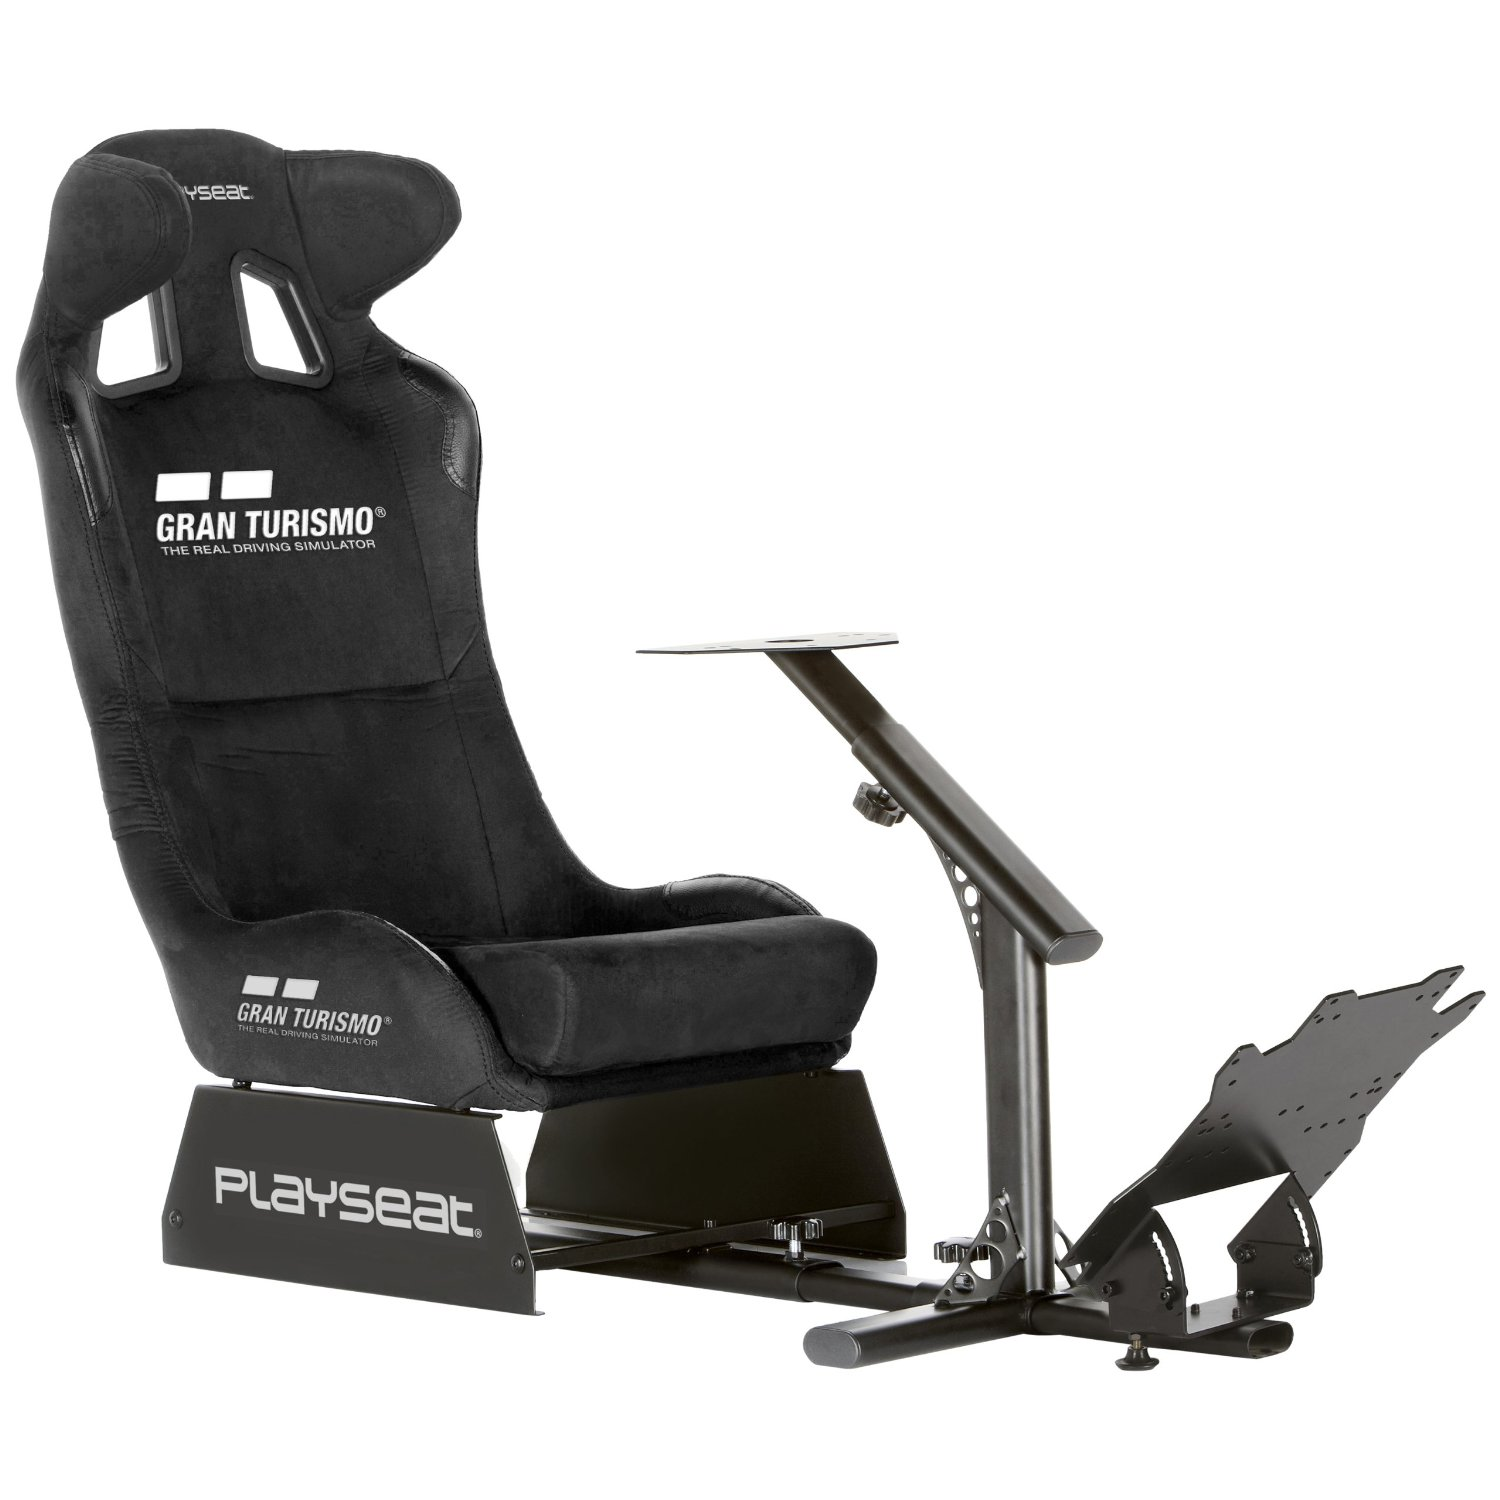 Playseat Gran Turismo Evolution Gaming Seat PS3/PS4/PC/Xbox